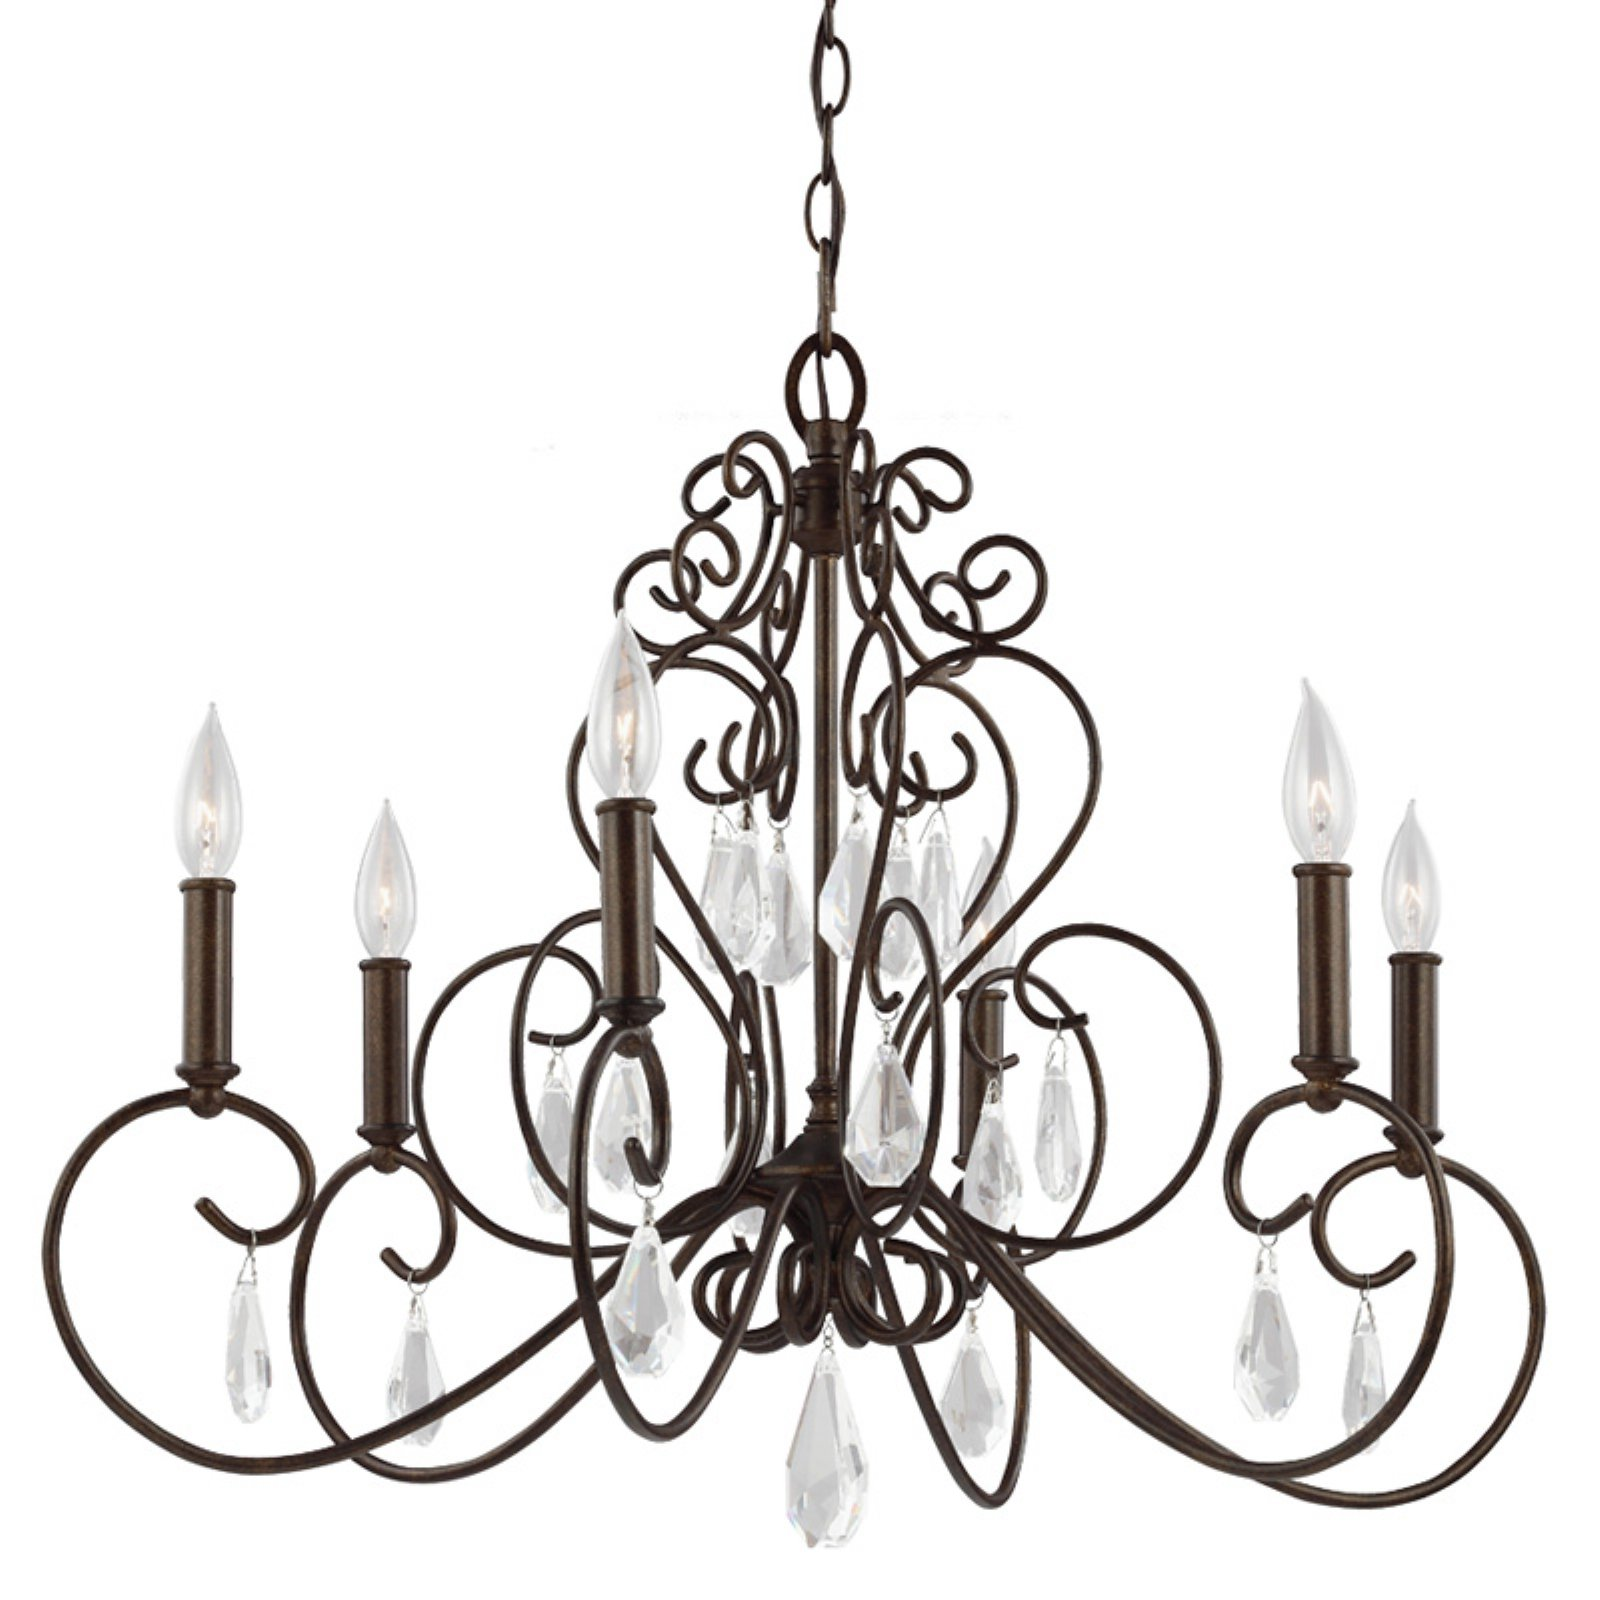 Feiss Angelette F3042 Chandelier by Murray Feiss